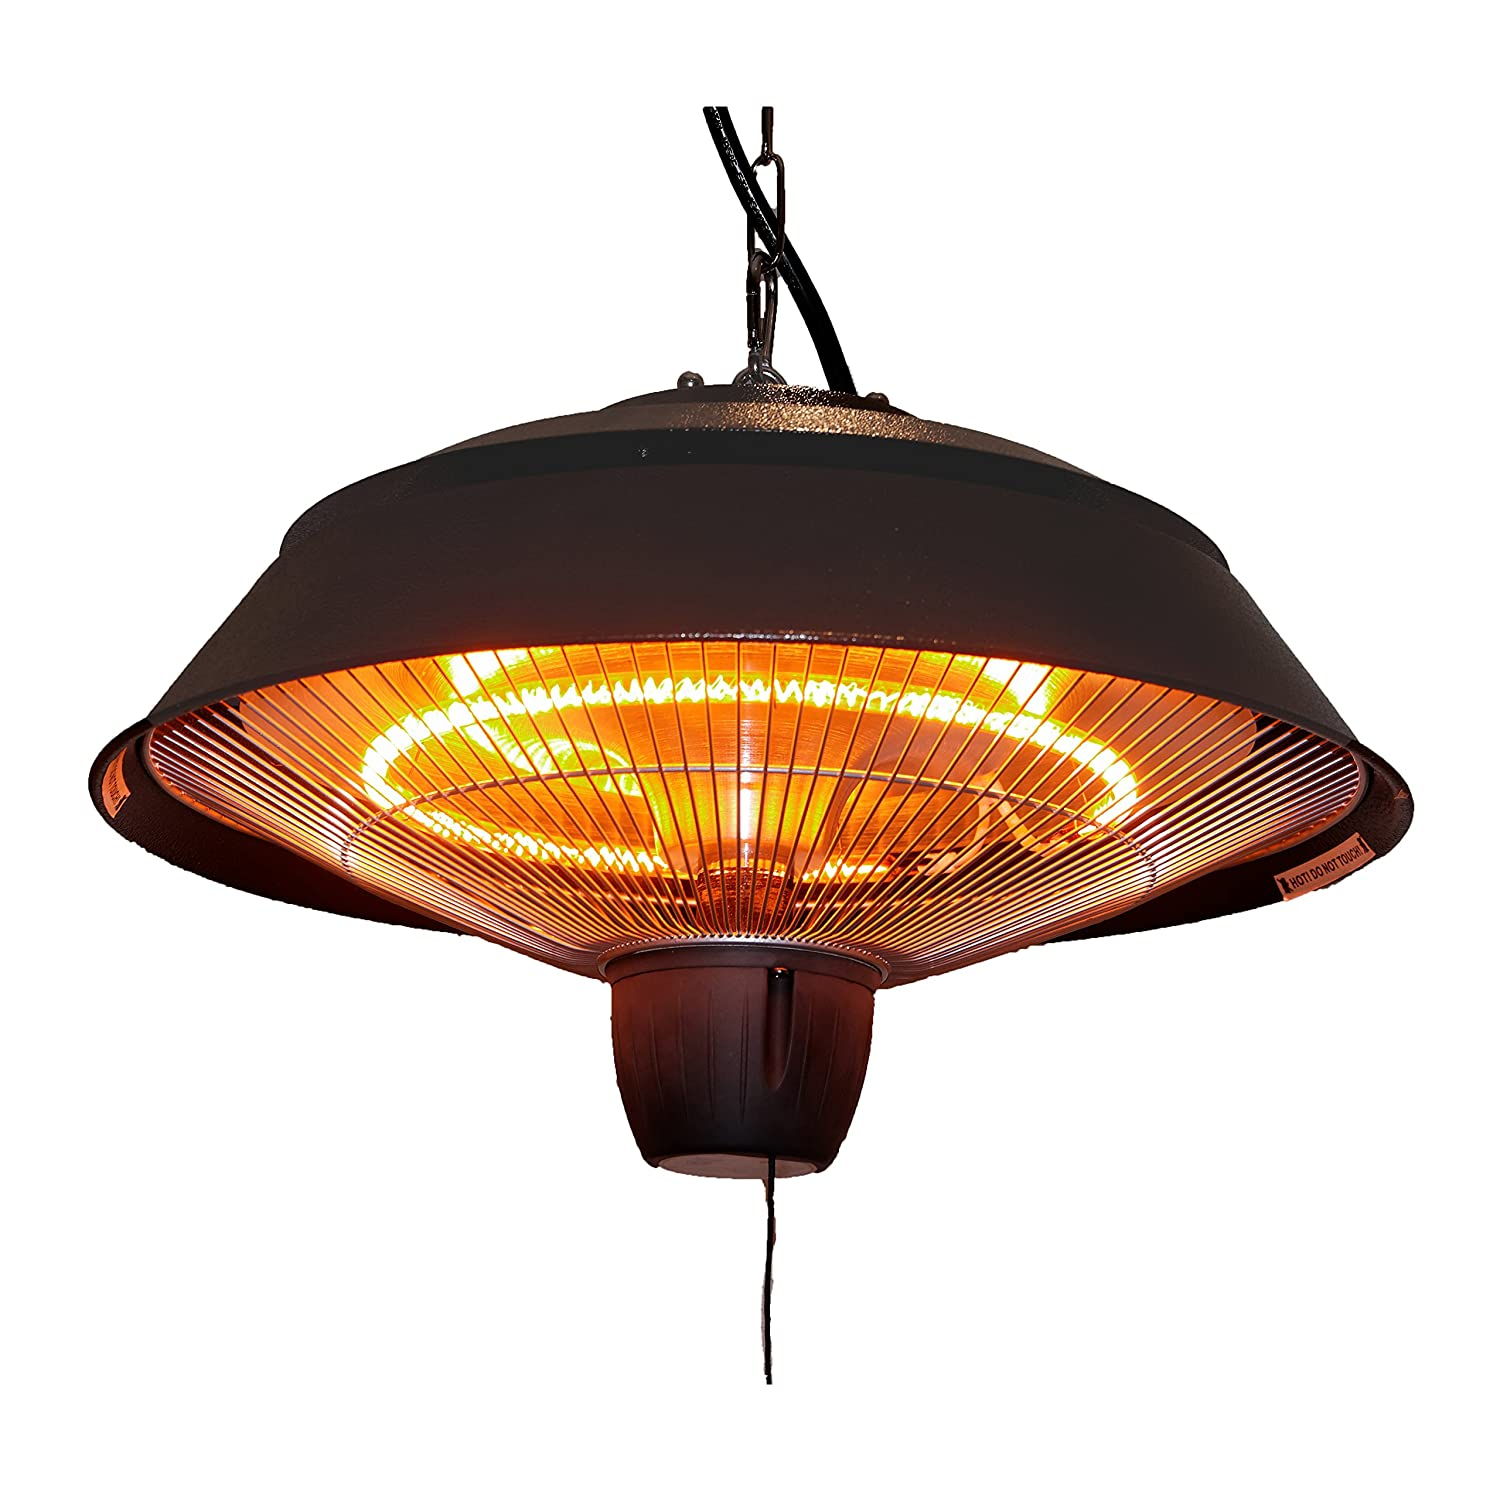 Amazon.com : Ener G+ Infrared Outdoor Ceiling Electric Patio Heater,  Hammered Brown : Garden U0026 Outdoor